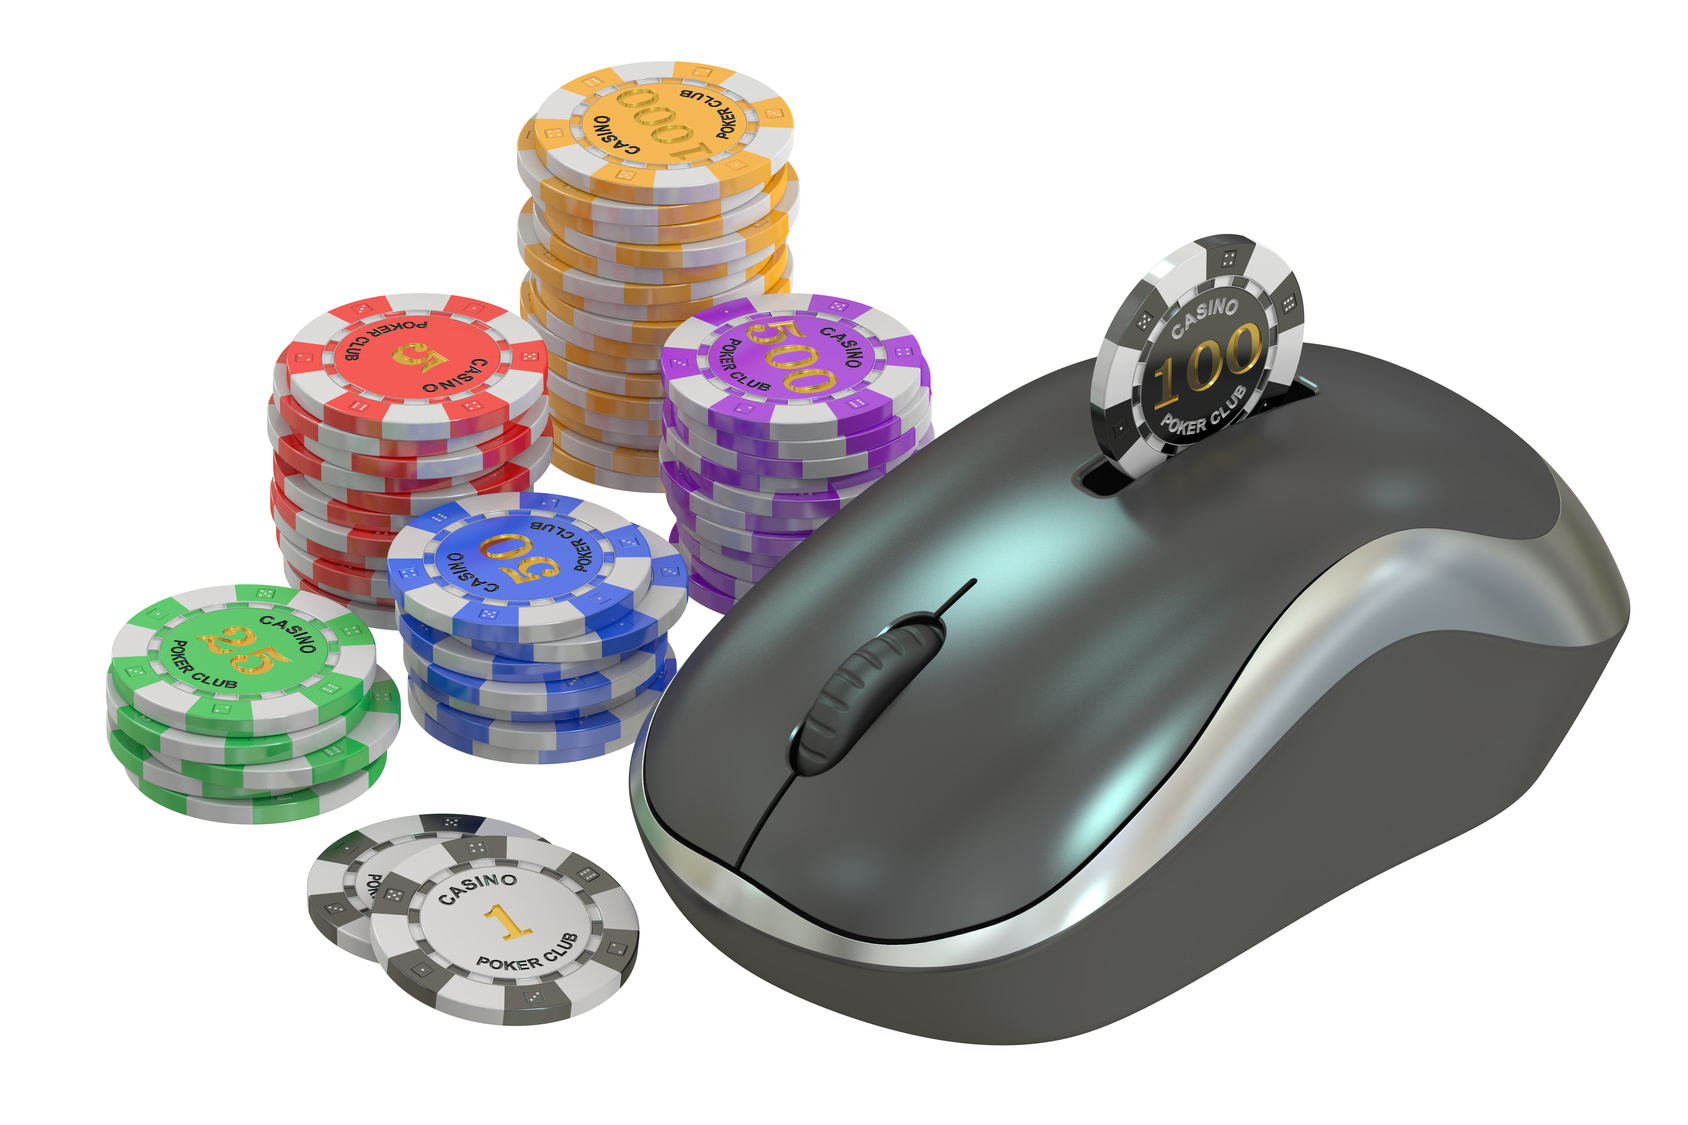 Dedicated services and the prompt support from the poker agent